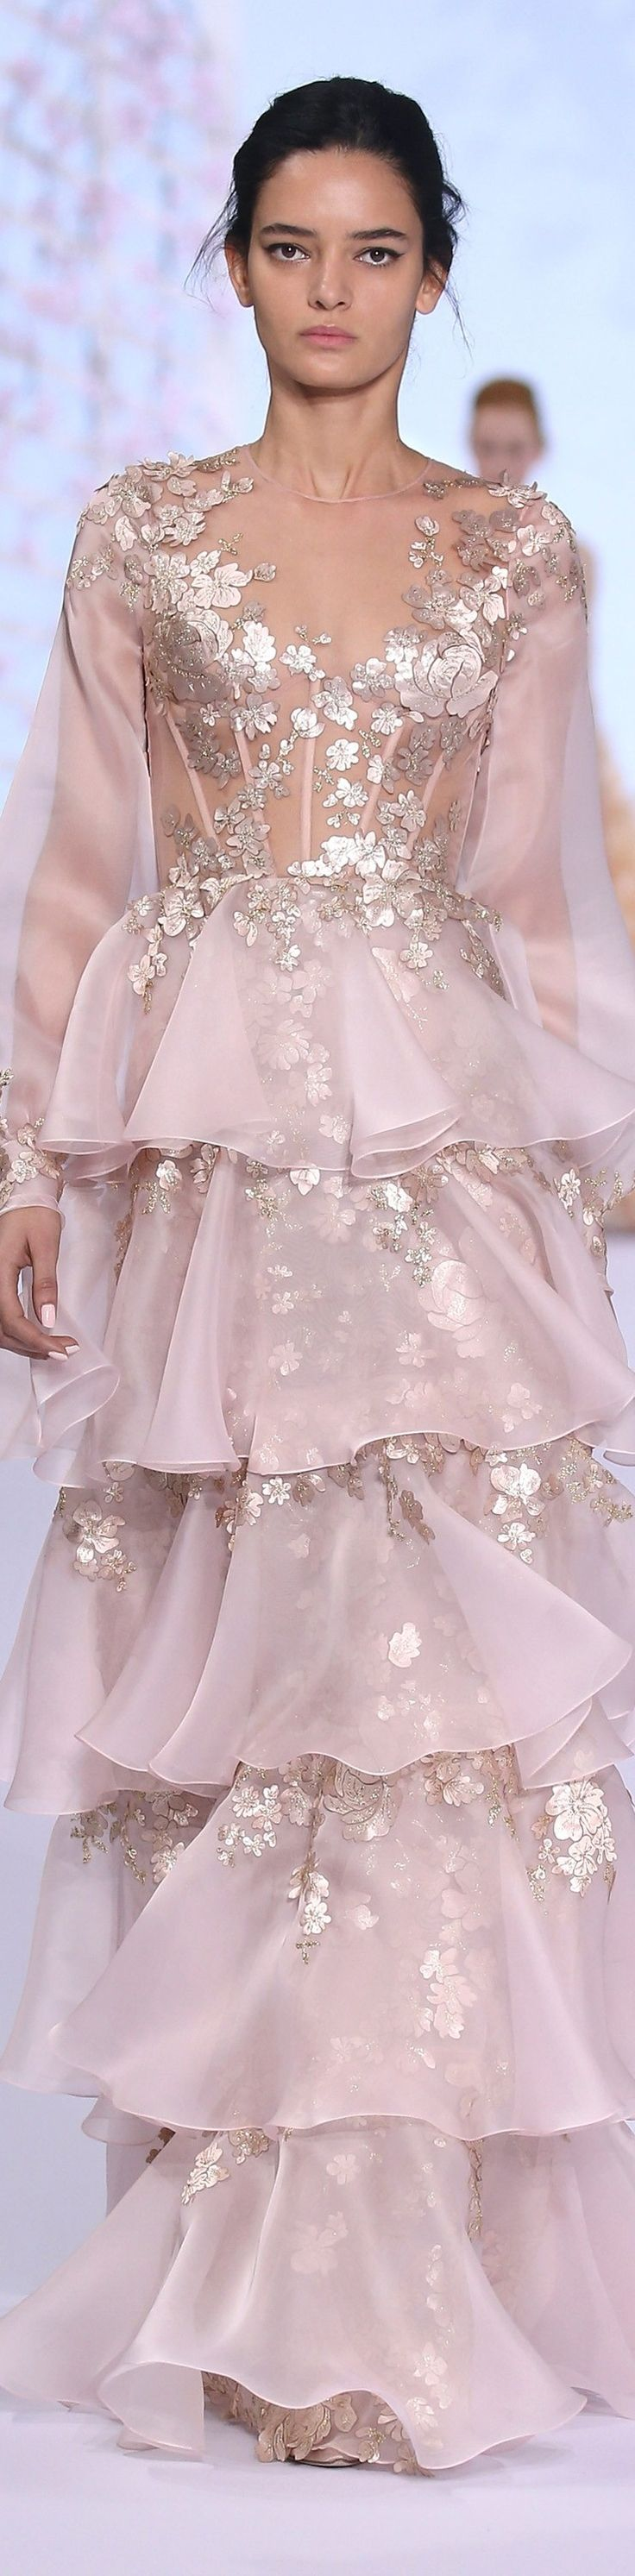 best clothes make the woman images on pinterest ladies fashion